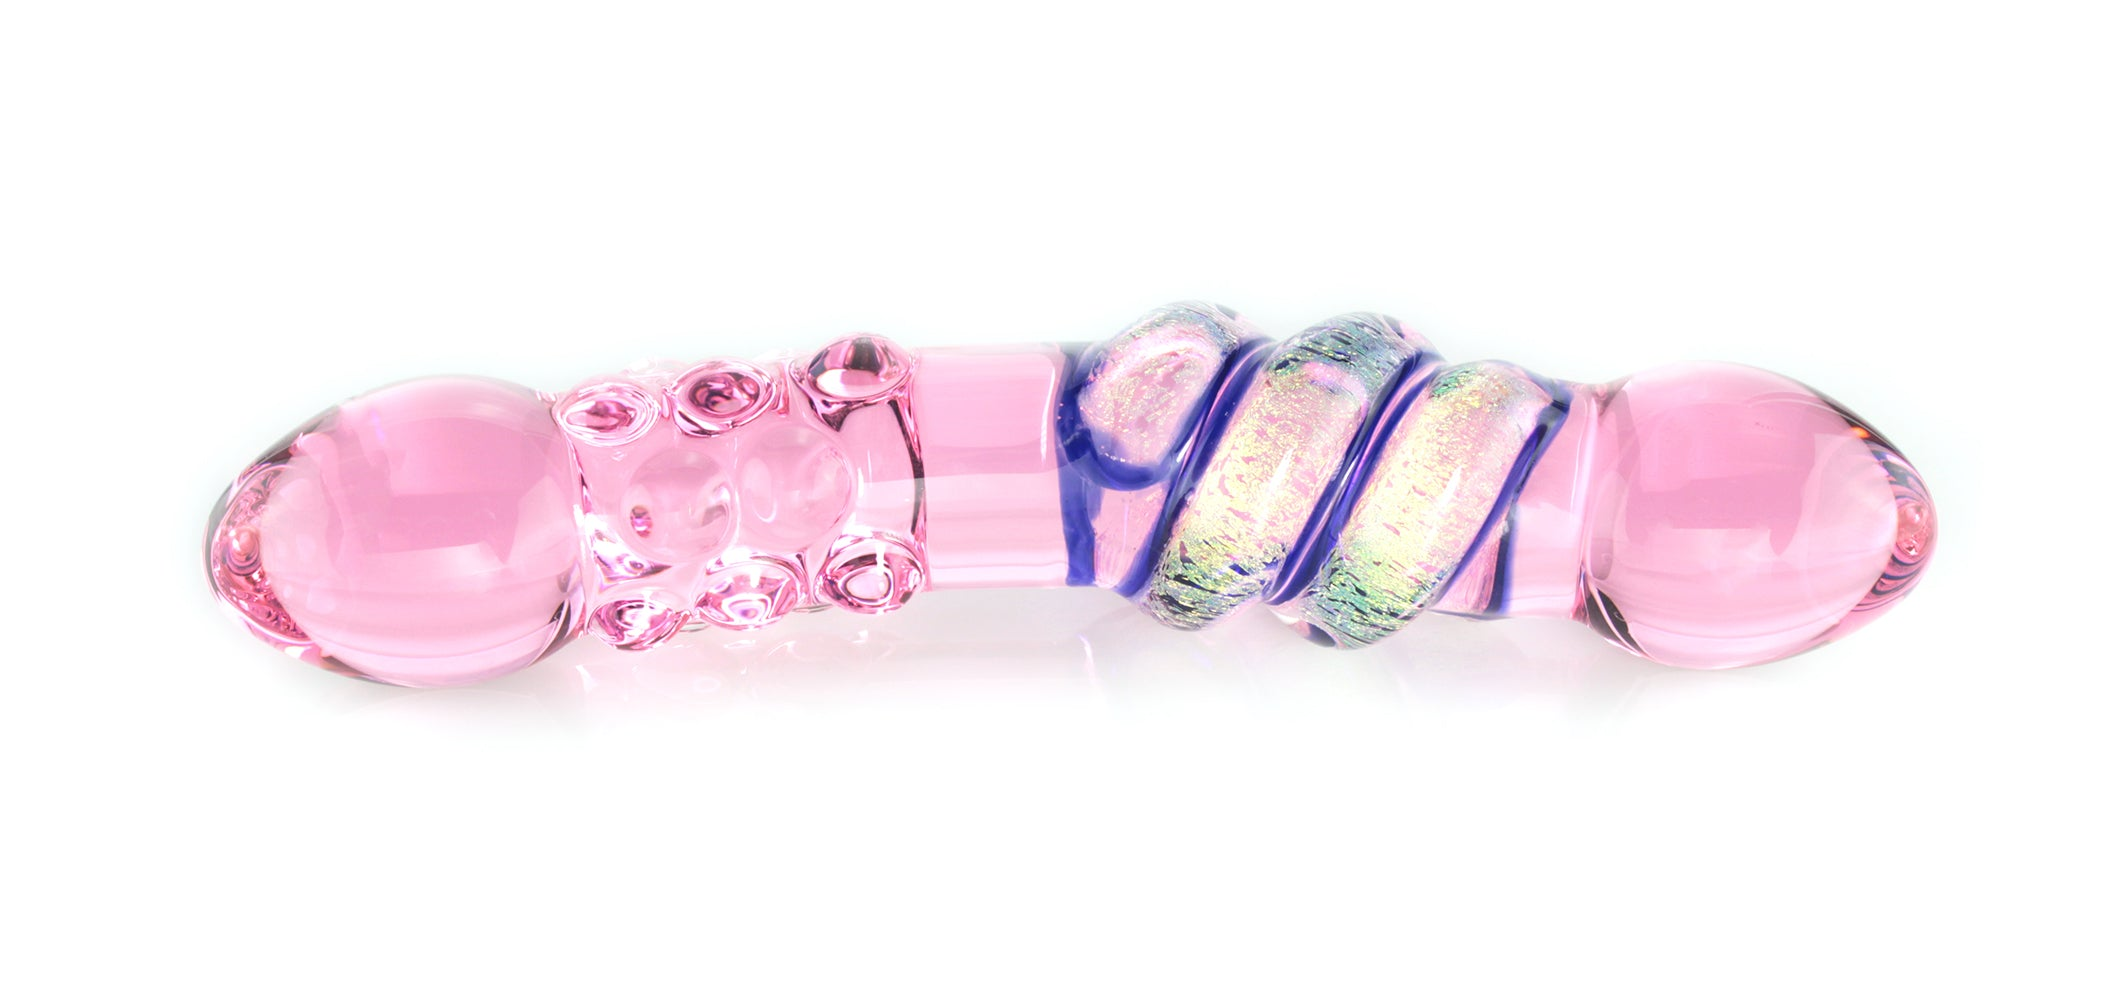 Pink glass dildo with dots and dichroic wrap